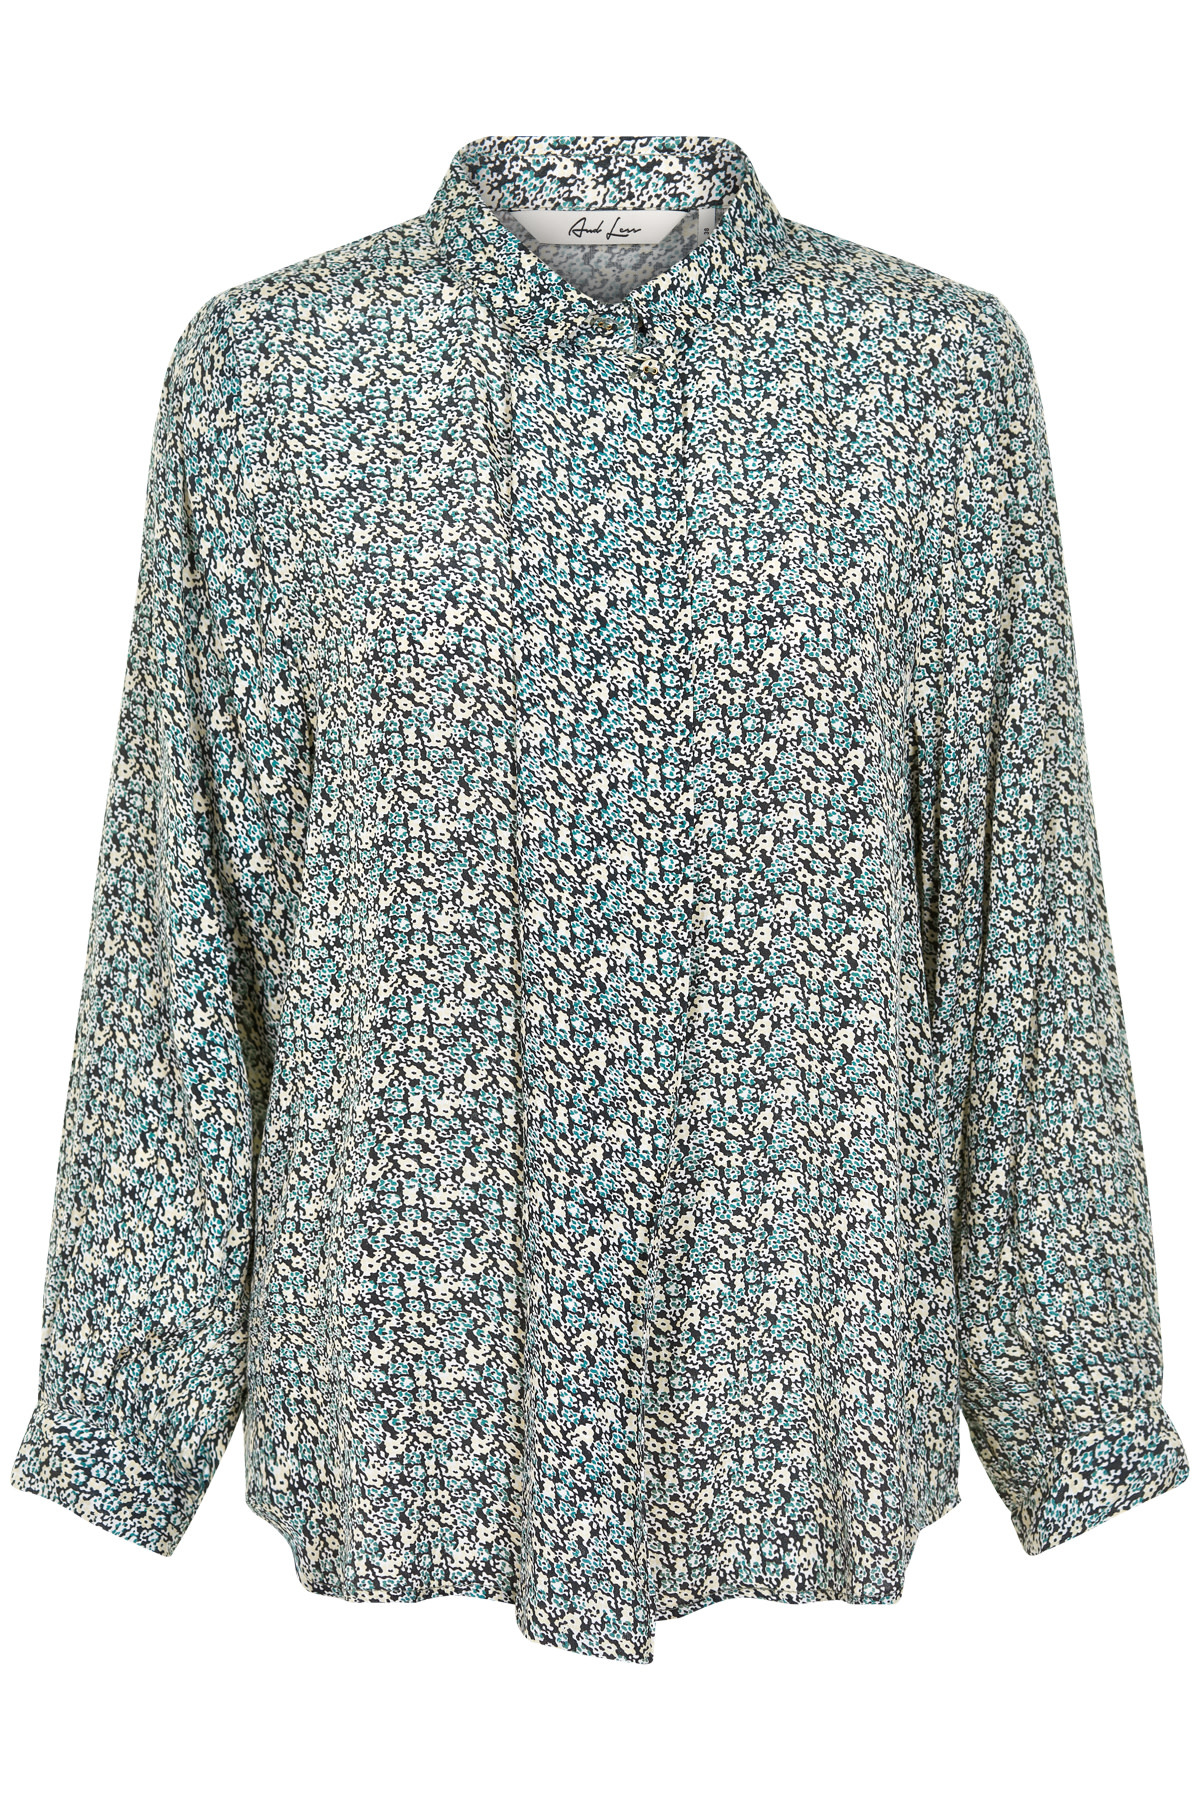 AndLess Liaria shirt